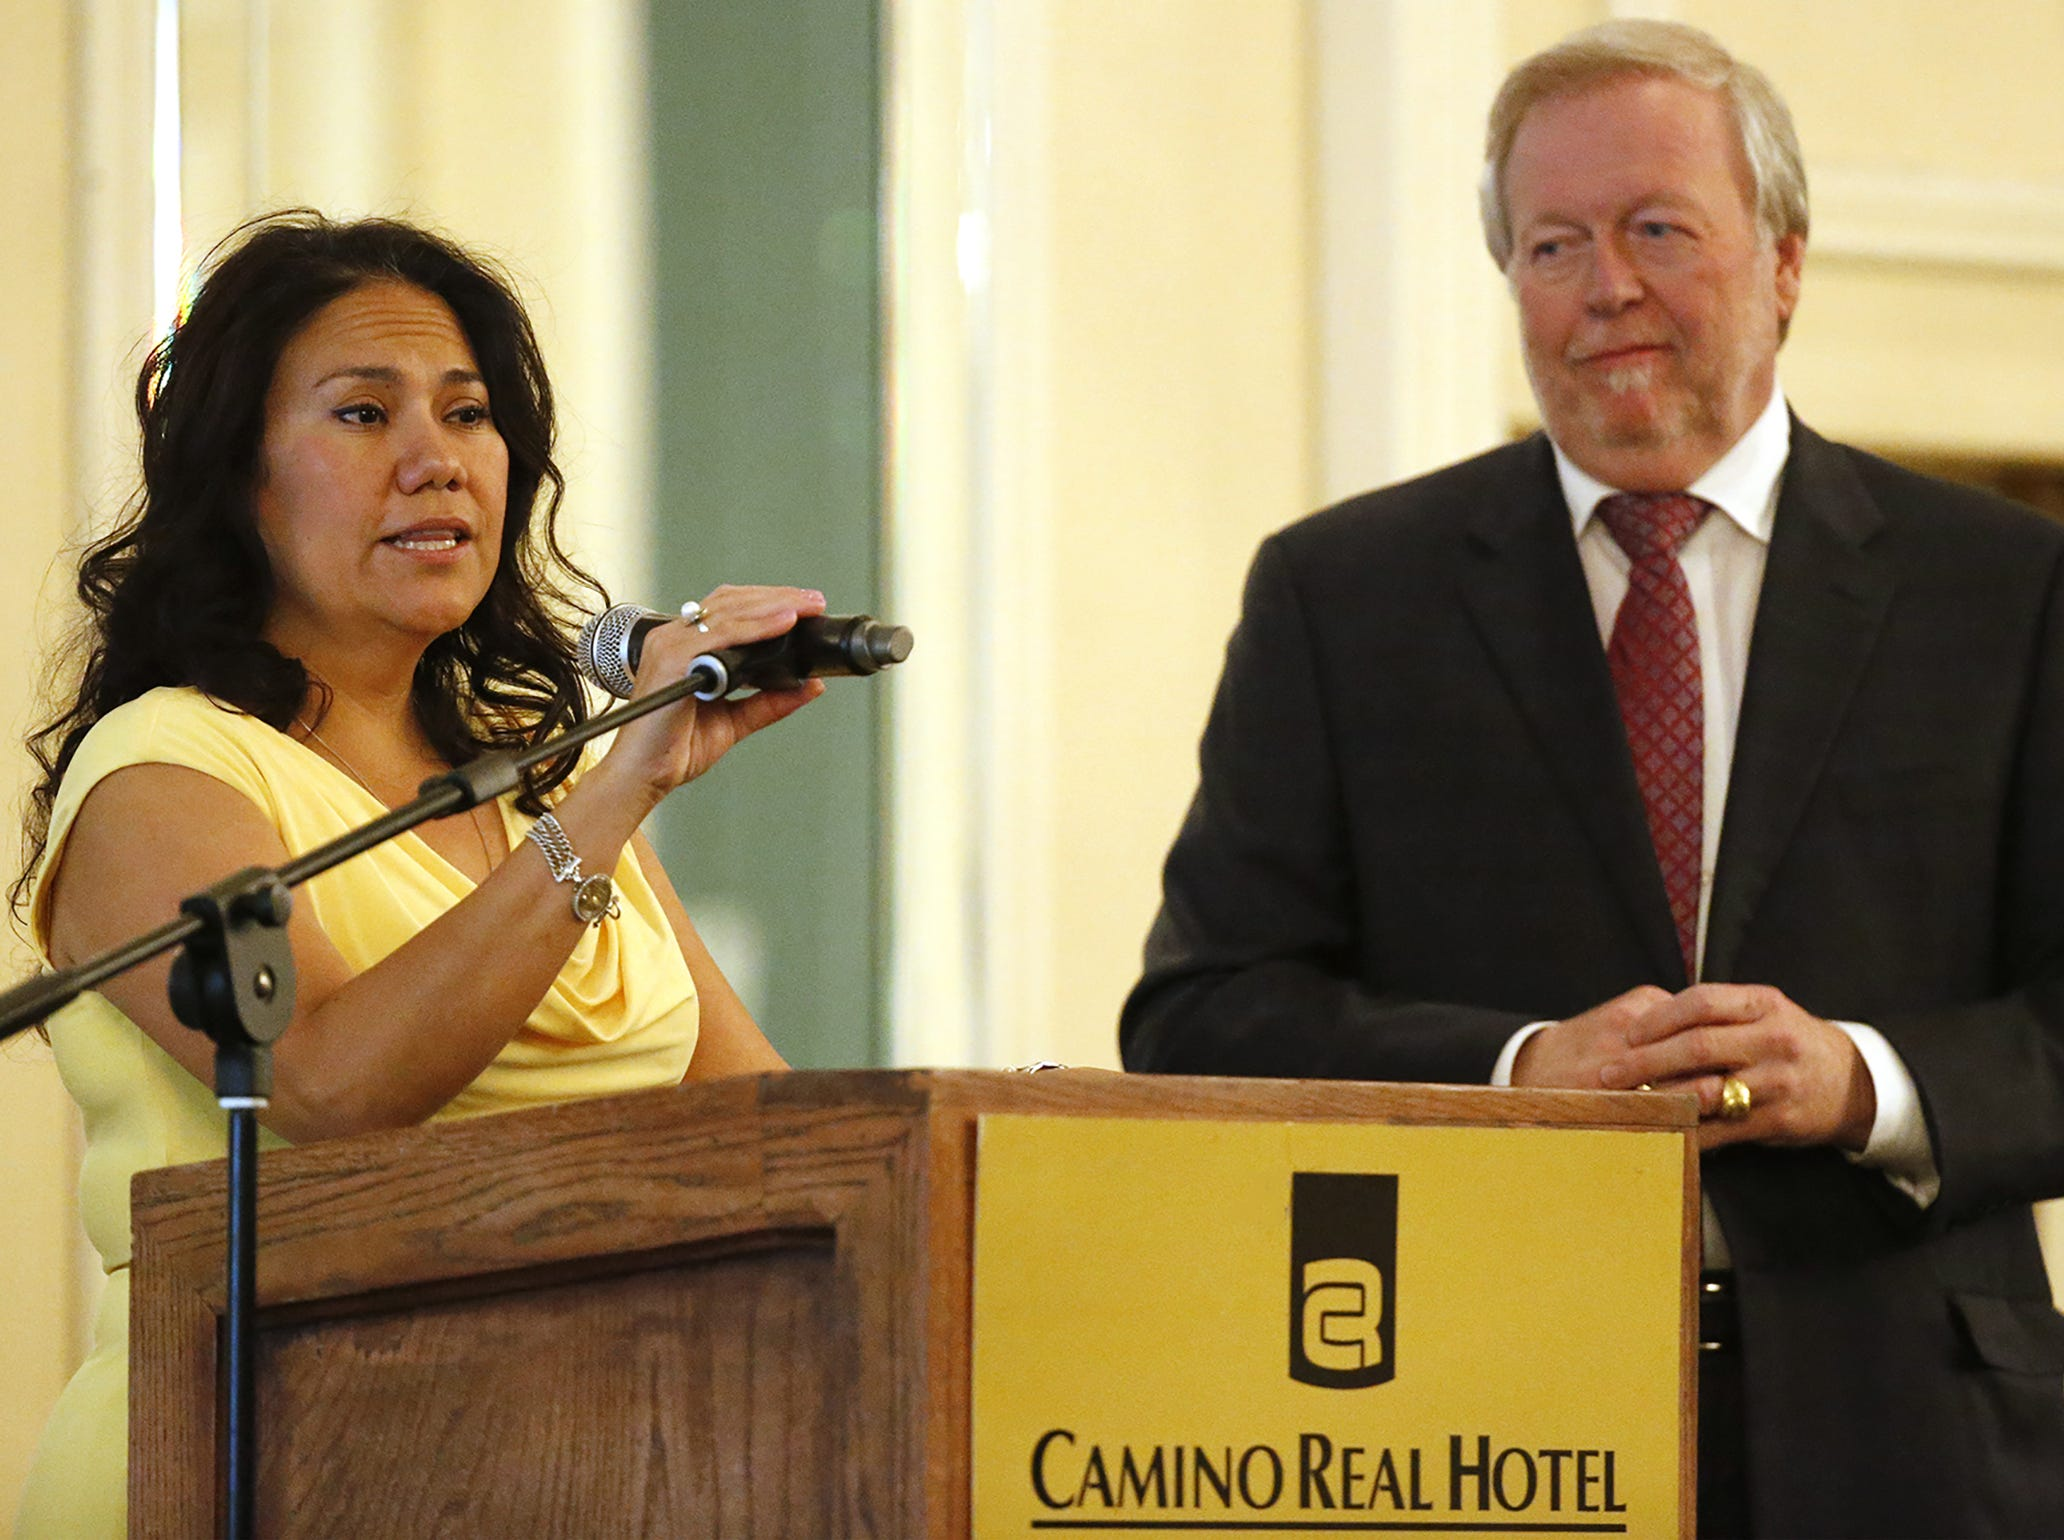 County Judge Veronica Escobar speaks at the monthly Central Business Association luncheon Wednesday afternoon at the Camino Real Hotel in Downtown. Escobar said if all goes well, a new CEO could be at University Medical Center of El Paso. Tanny Berg, a Central Business Association board member, looks on as Escobar, who was the guest speaker, replies to a question from the audience.